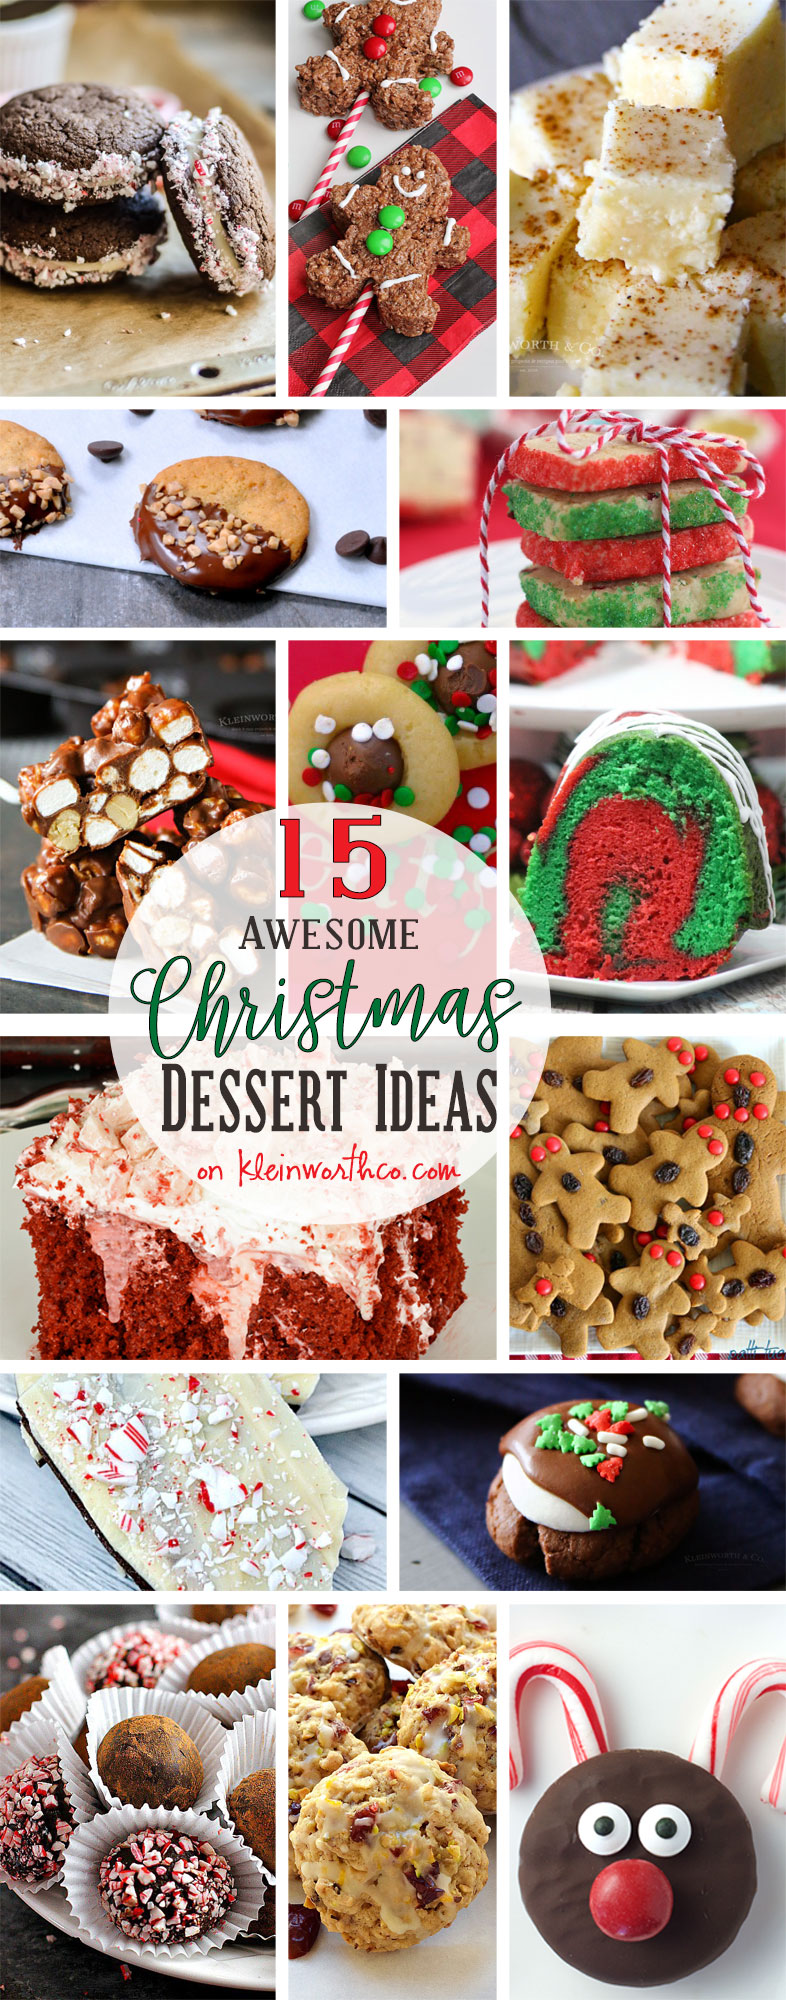 15 AWESOME Christmas Dessert Ideas